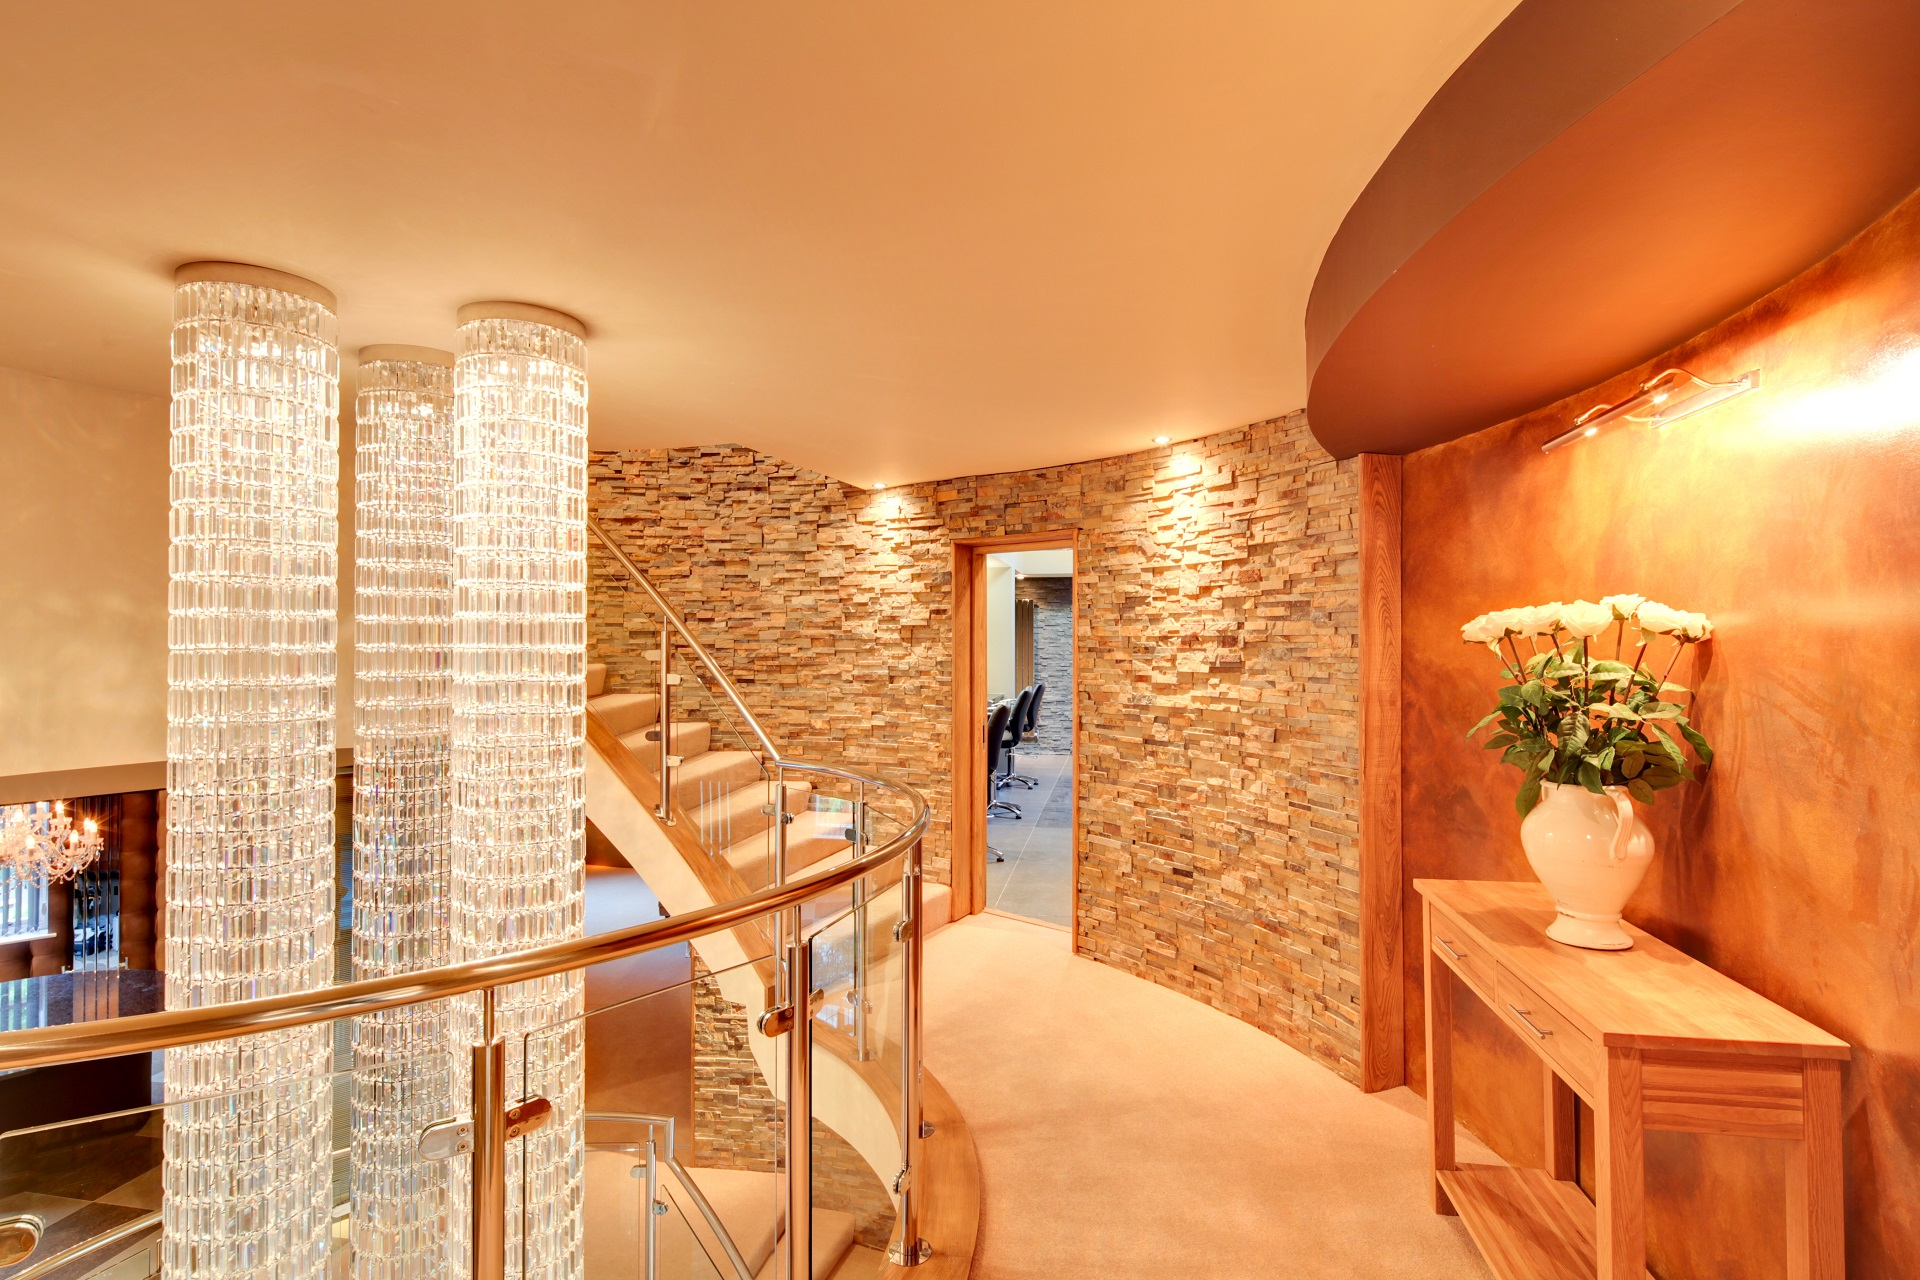 Luxury Interior design at hall view by Guy Phoenix.